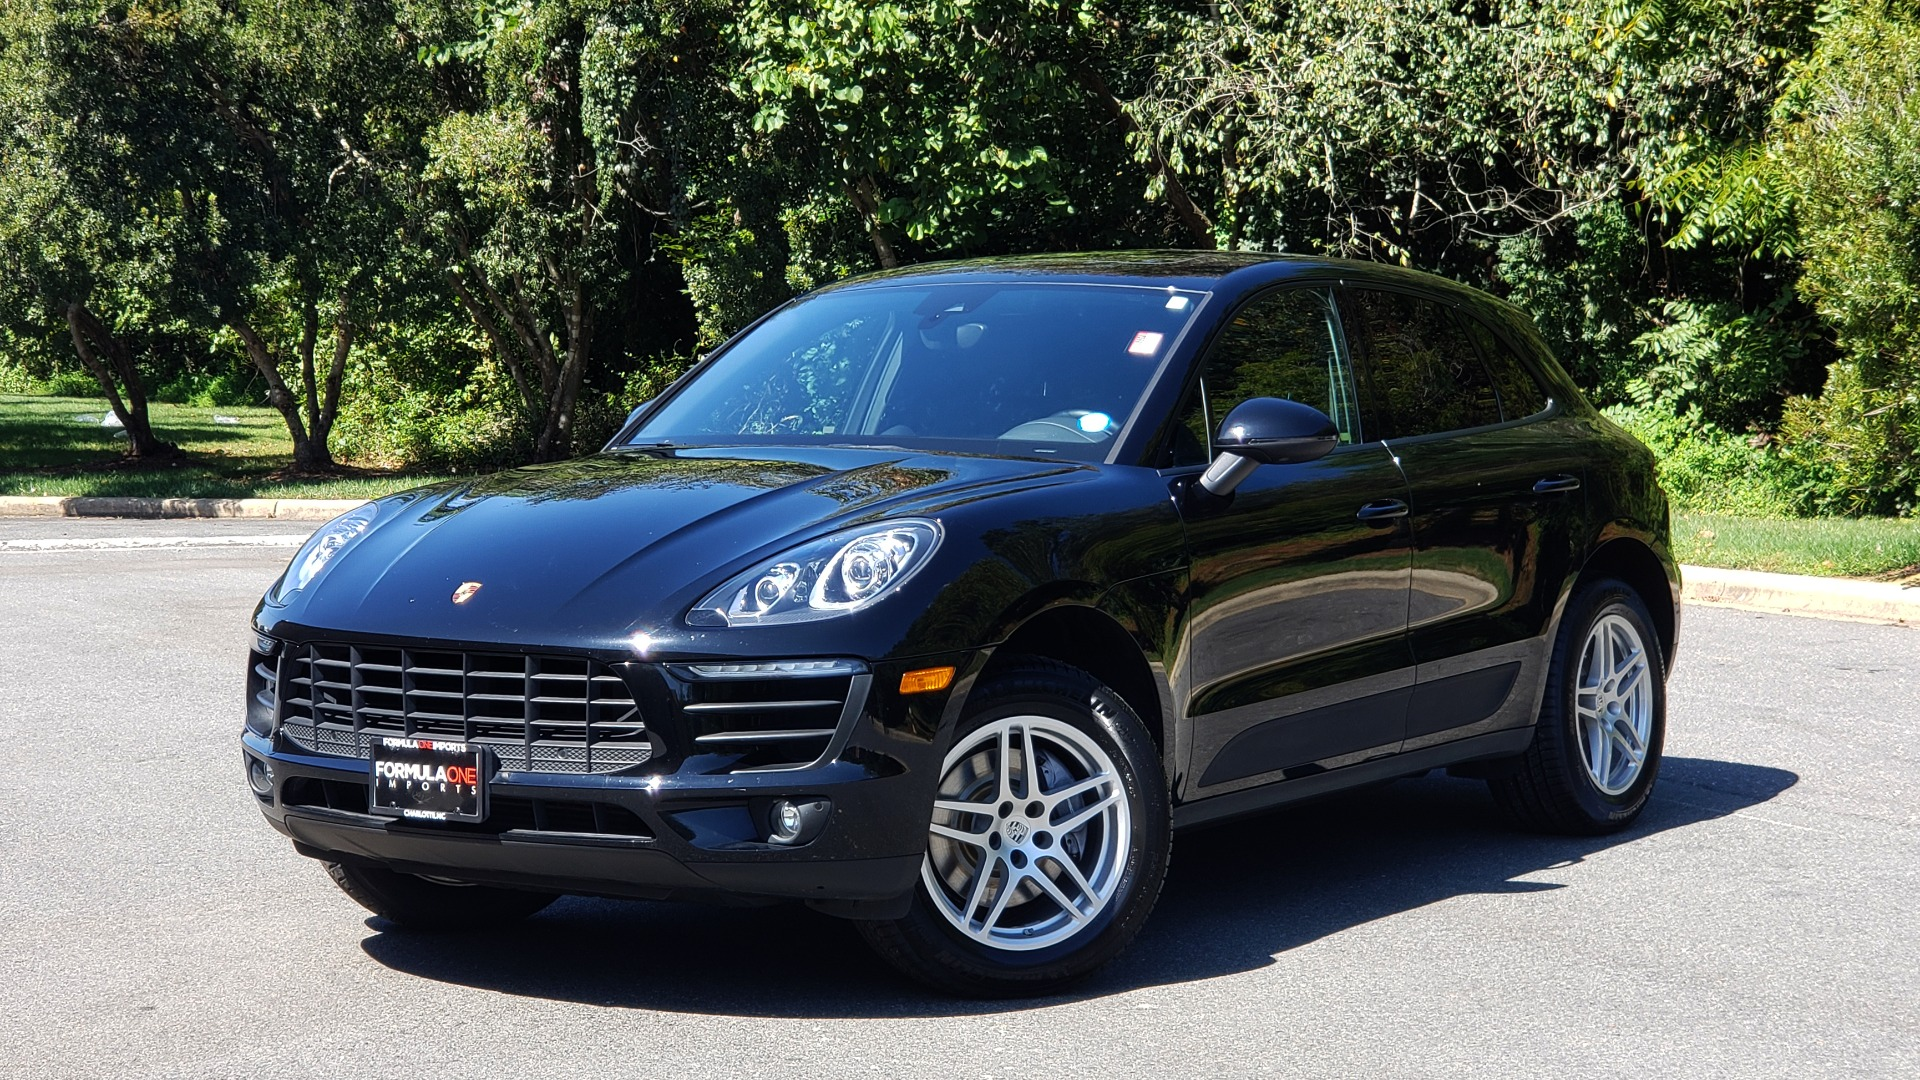 Used 2018 Porsche MACAN PREMIUM PKG PLUS / NAV / PDK / BOSE / REARVIEW for sale Sold at Formula Imports in Charlotte NC 28227 1